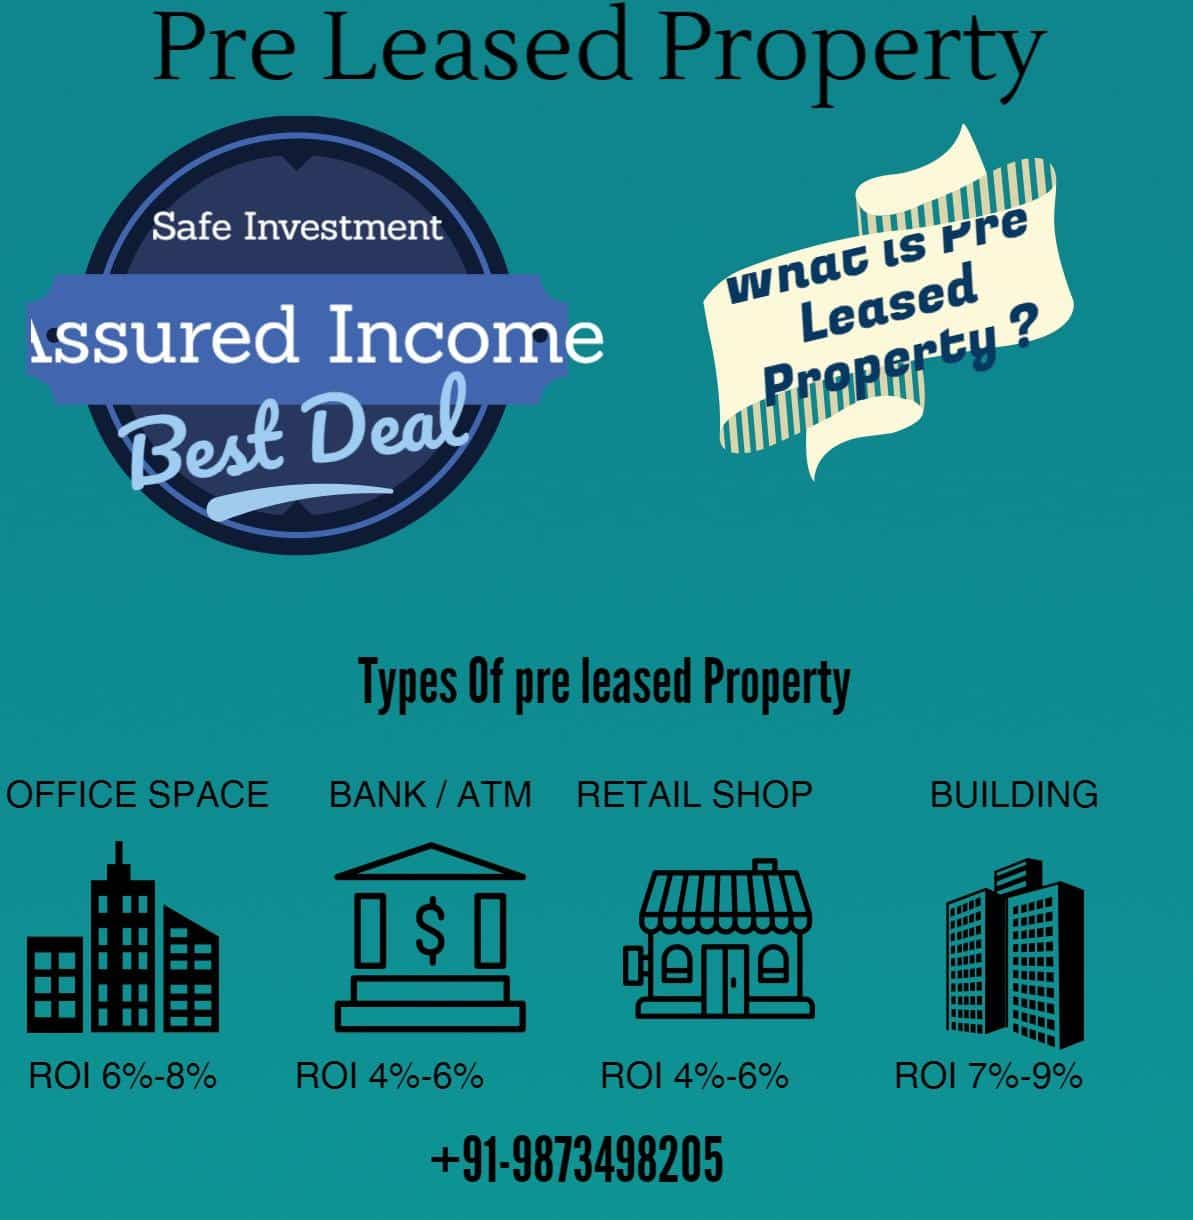 Leased Property For Sale In Delhi